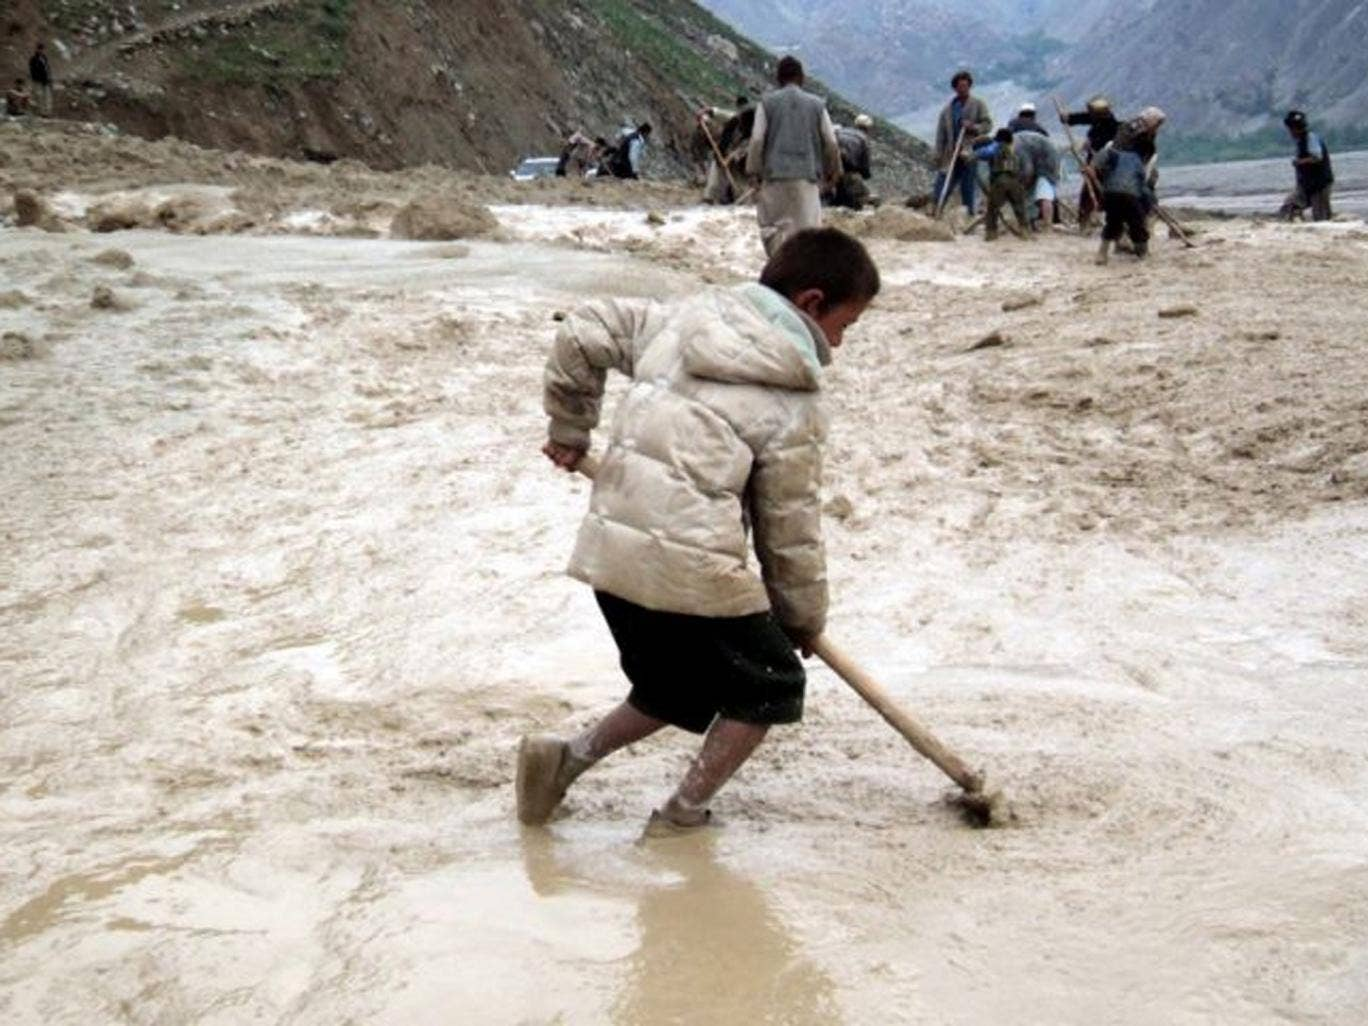 Workers removing debris from a road affected by flash floods in Badakhshan, Afghanistan. As in 2012, the area has been hit again by a comparable disaster. At least 2,100 people are feared dead on 02 May 2014, after a mudslide, caused by heavy rainfalls, b